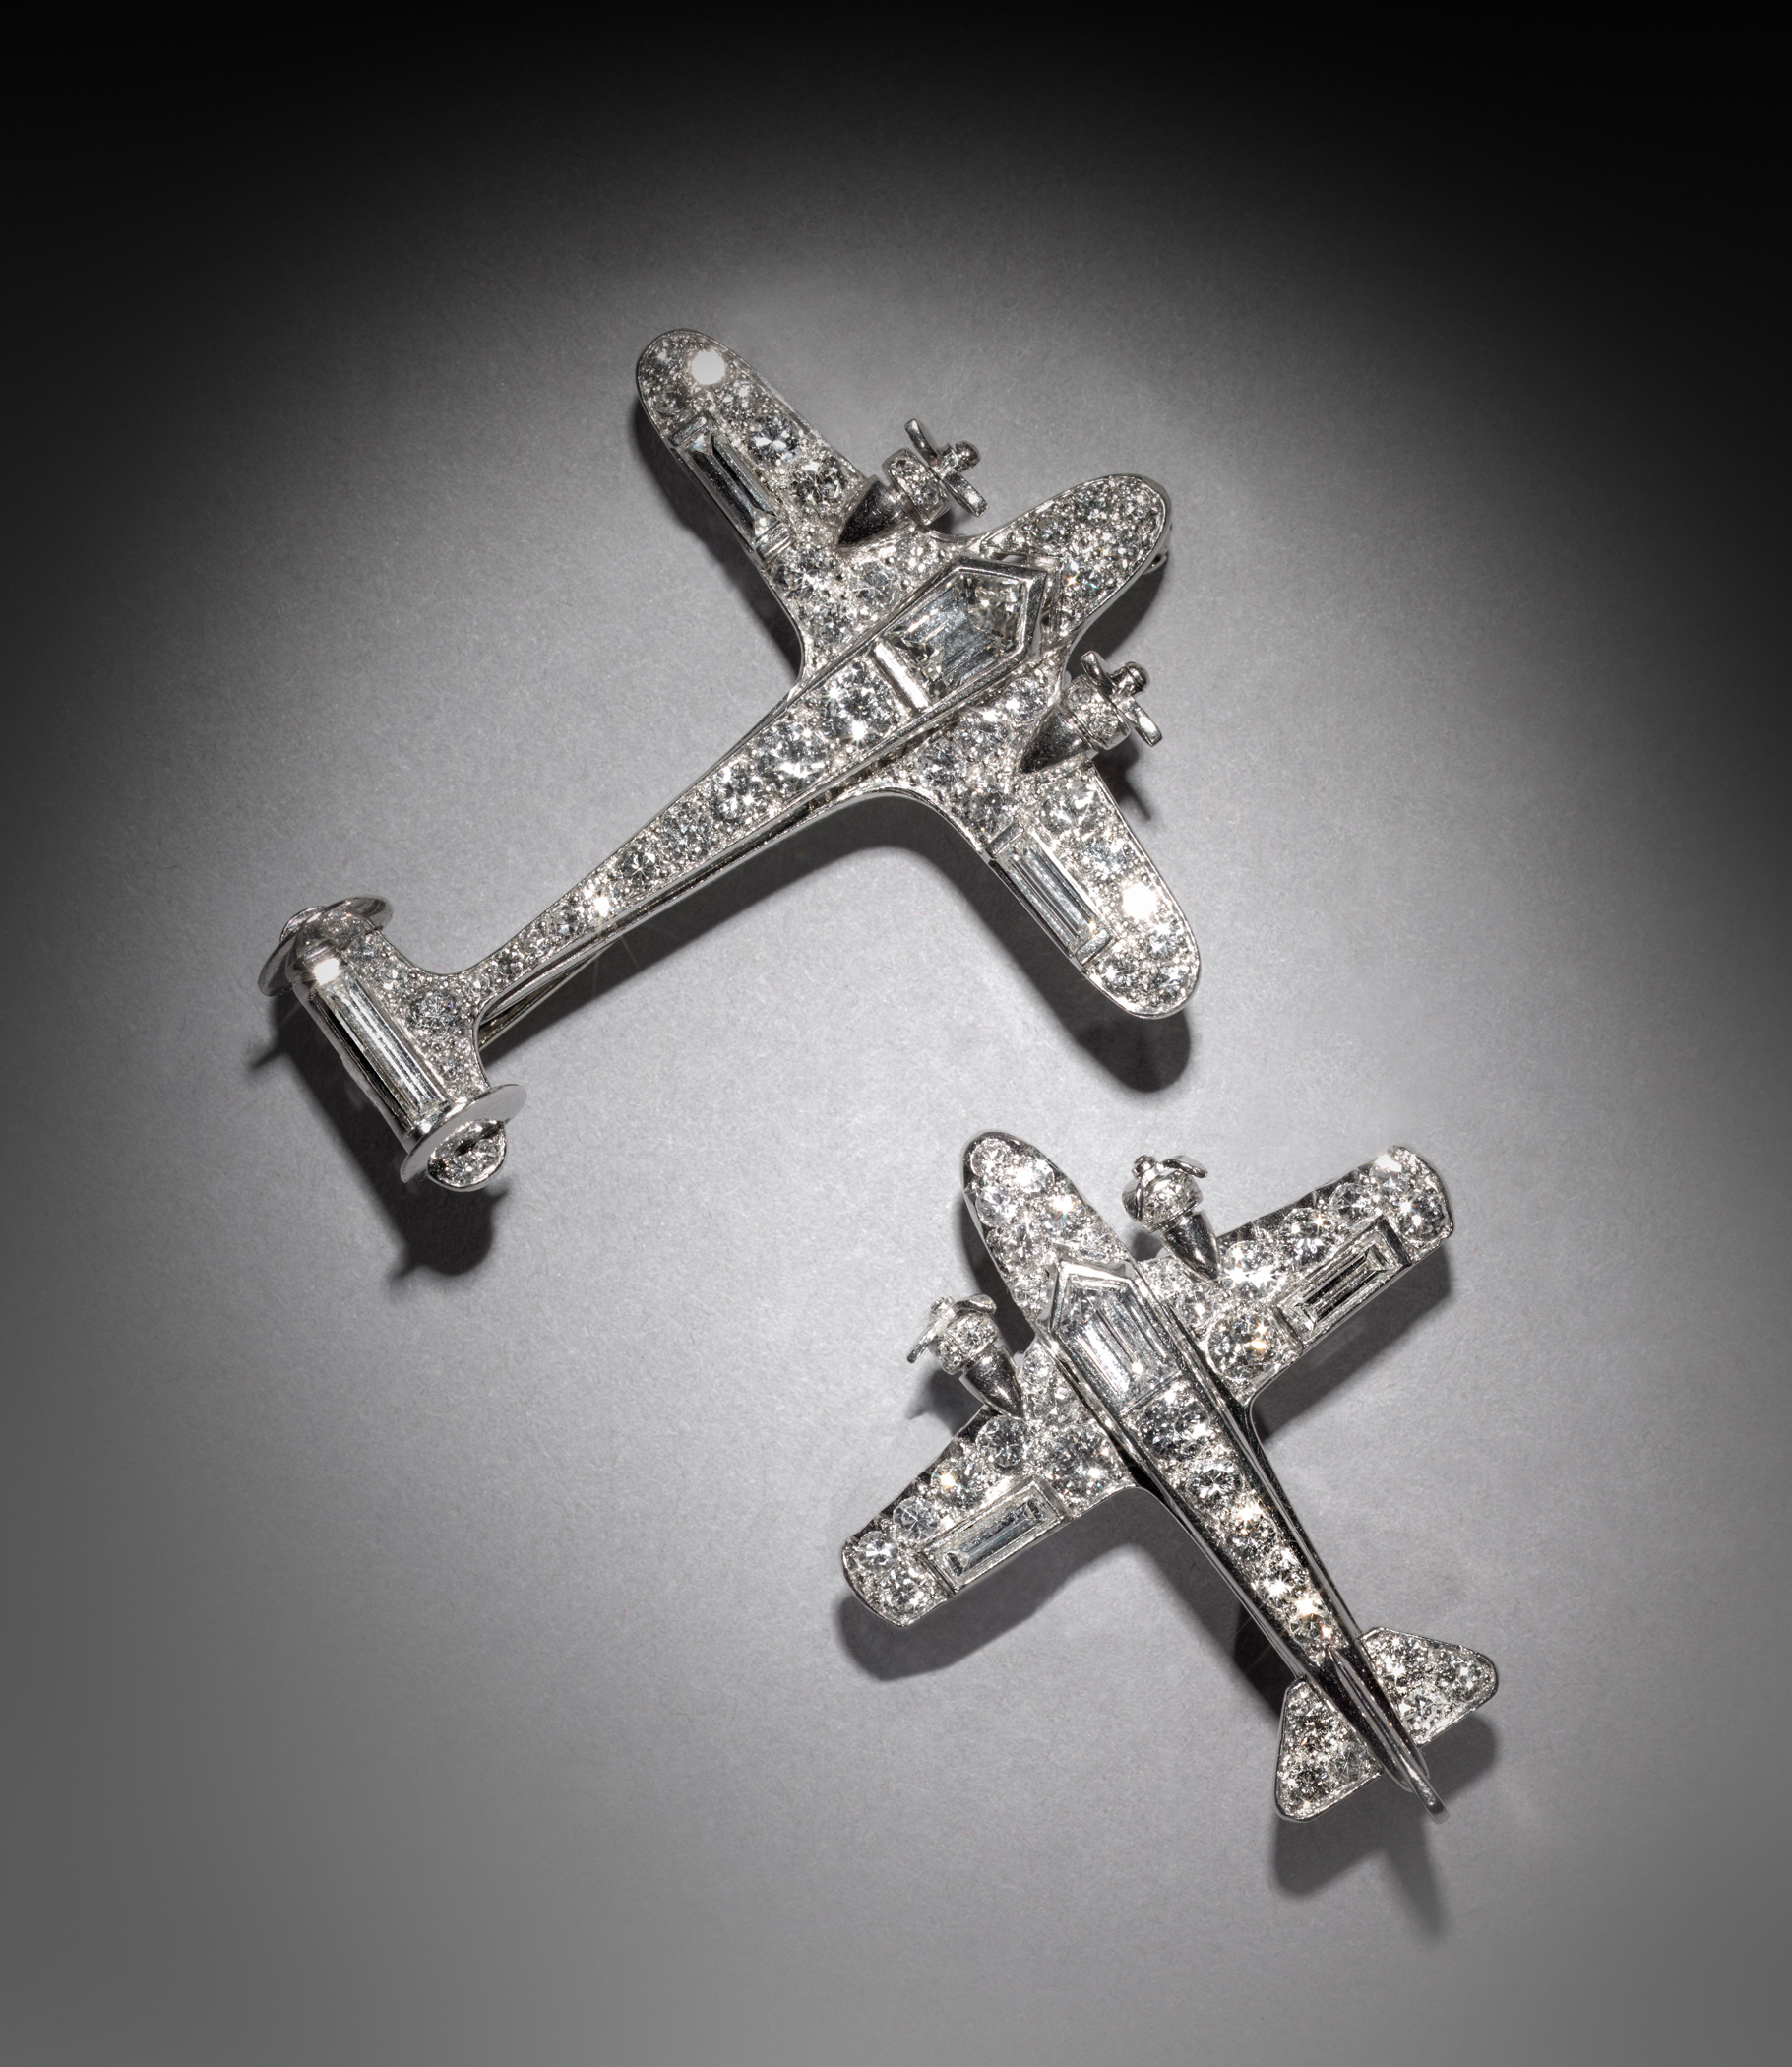 Jewelry Of The Jazz Age Set The Tone Of A New Exhibit At